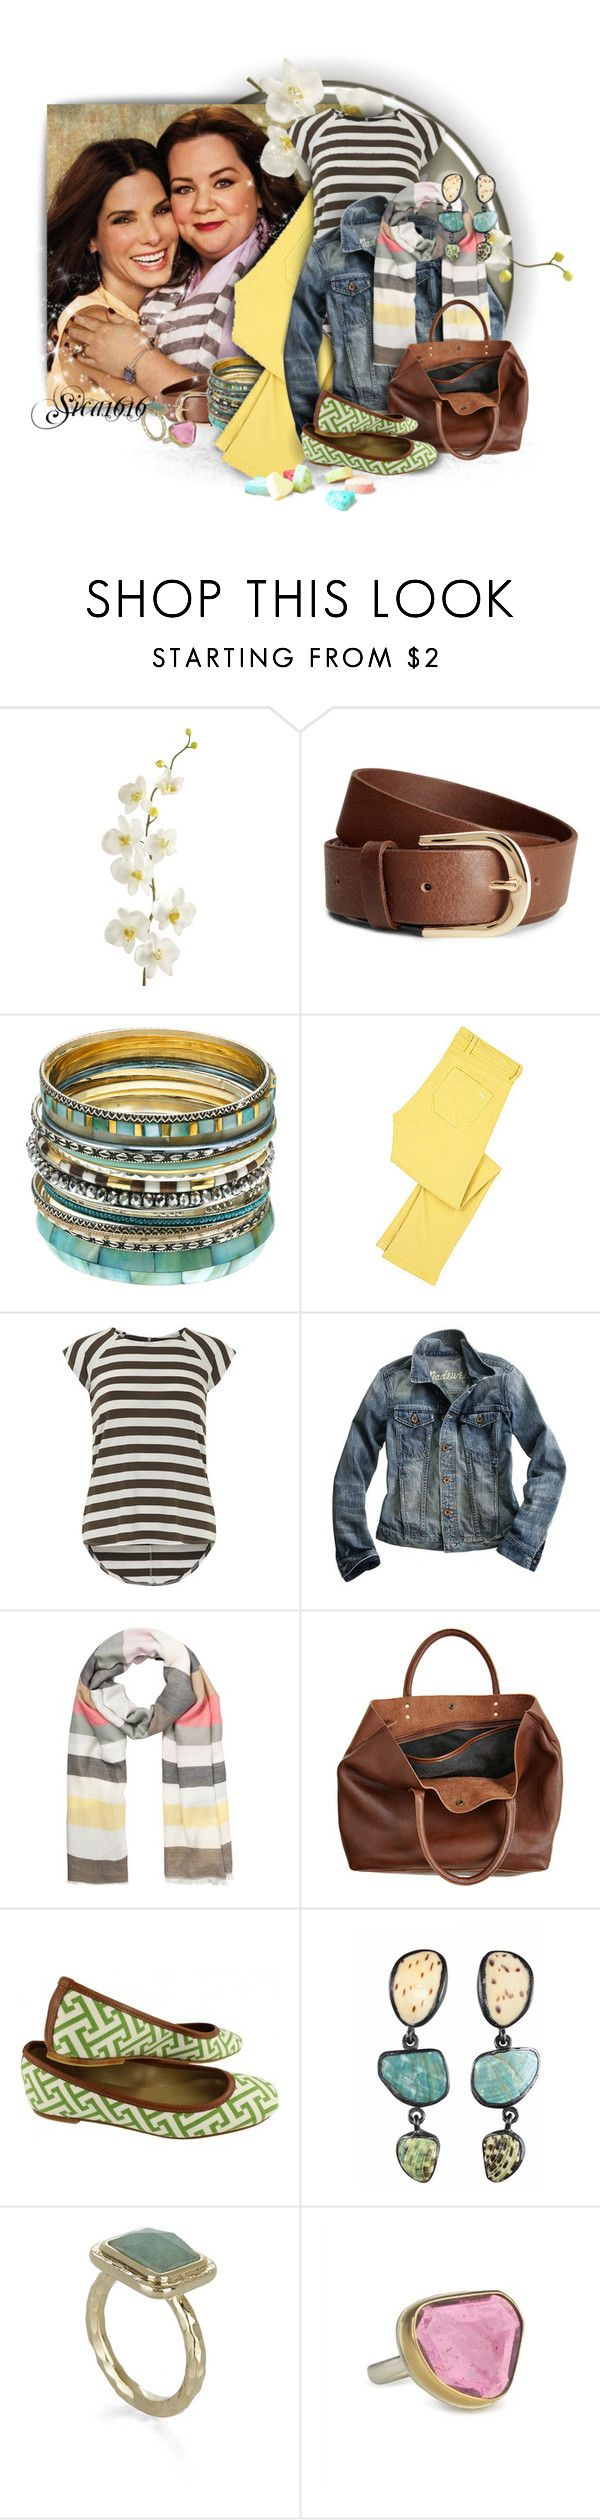 """""""Fav Celeb(s)"""" by sica1616 ❤ liked on Polyvore featuring Pier 1 Imports, H&M, Accessorize, M.i.h Jeans, Dorothy Perkins, Madewell, John Lewis, Monserat De Lucca, Monies and BCBGMAXAZRIA"""